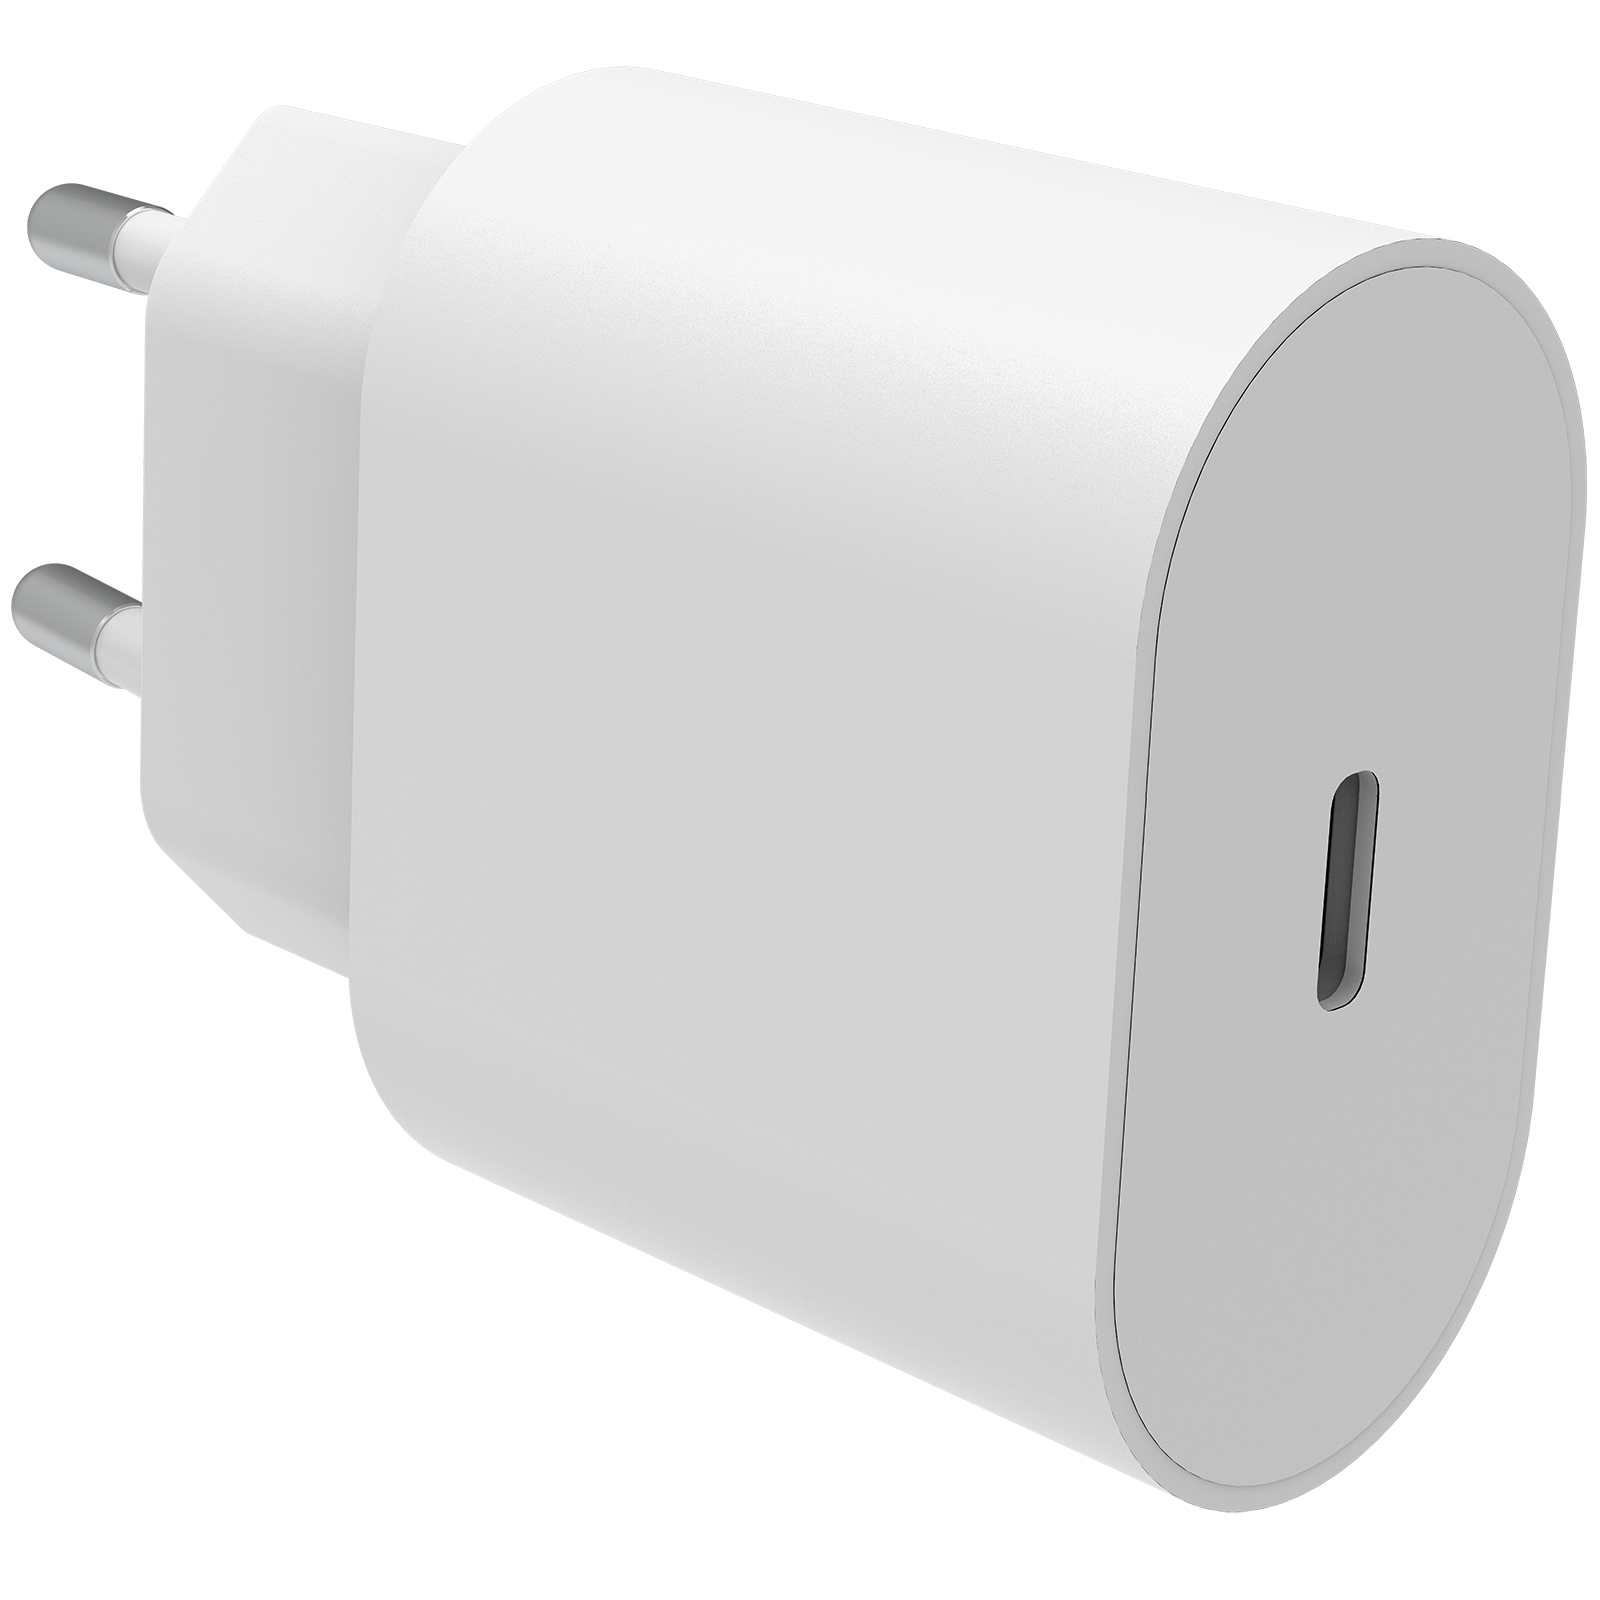 PD Wall Charger 20W USB-C valkoinen